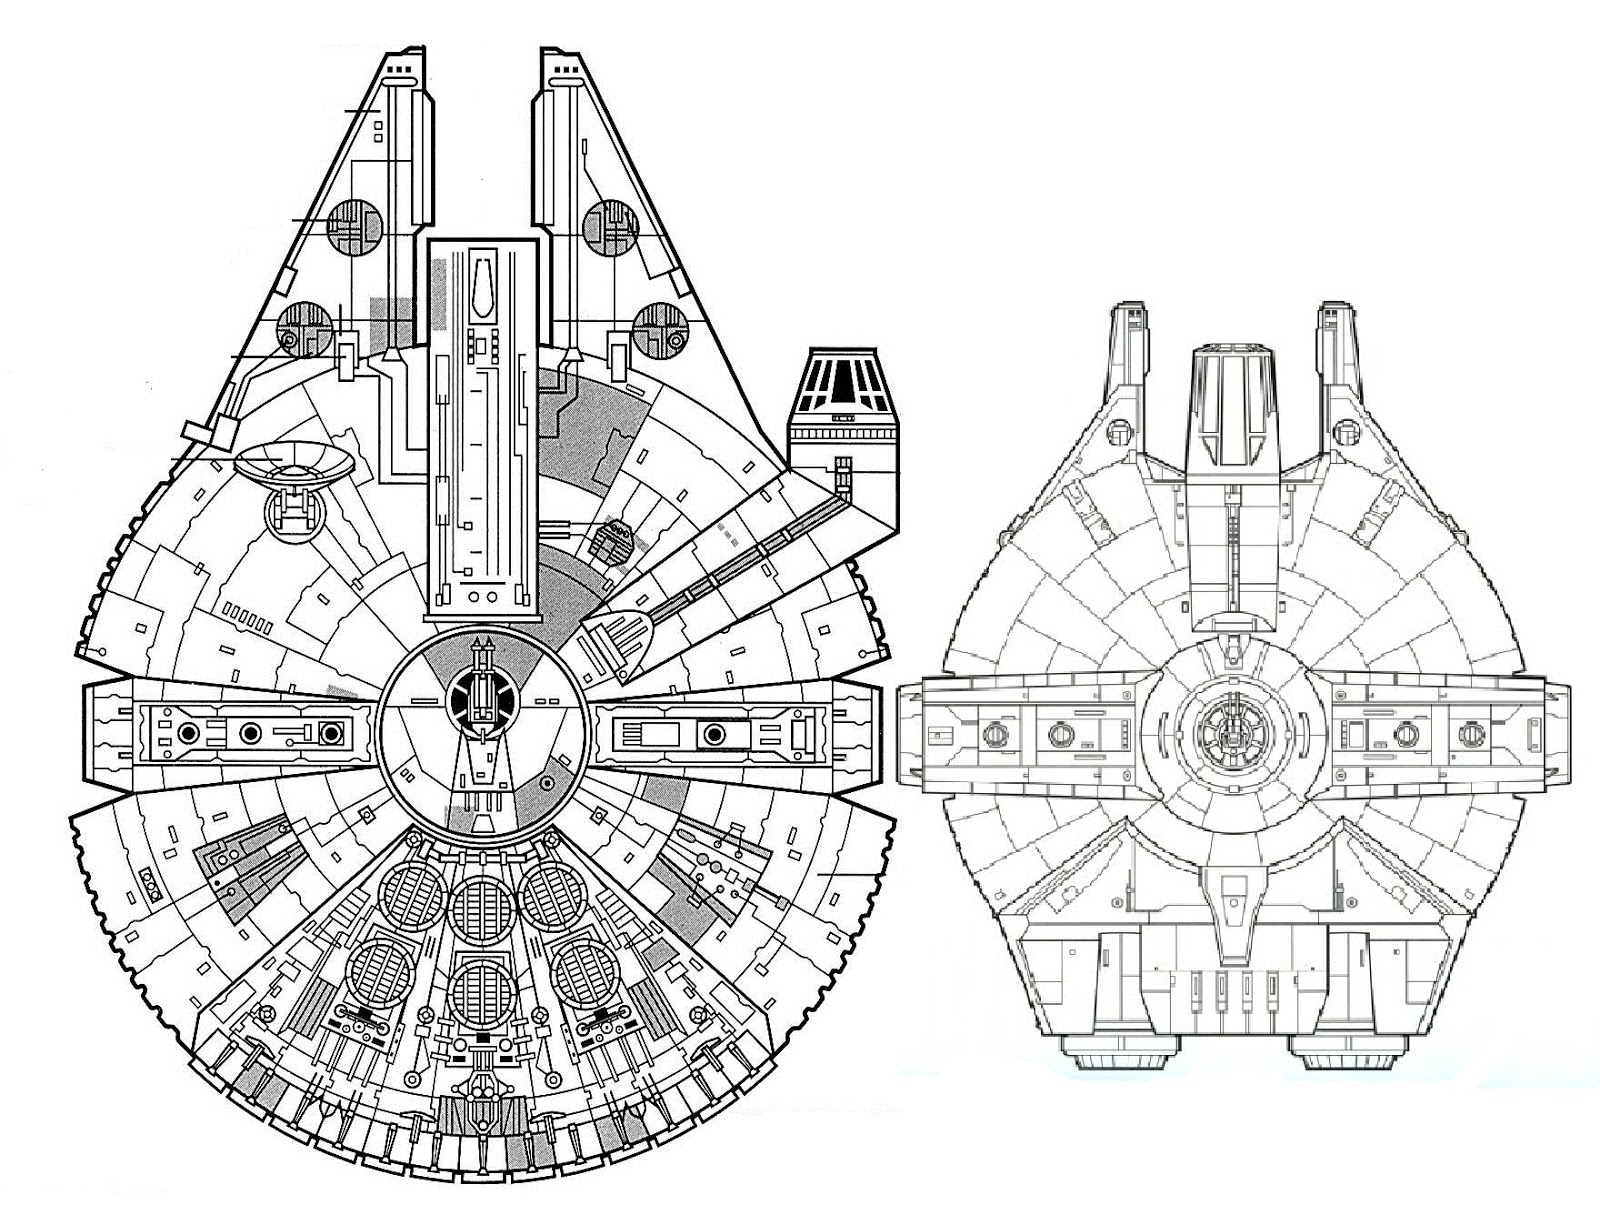 freighter diagrams  gattaca models and props: yt-1000 corellian freighter ... #3